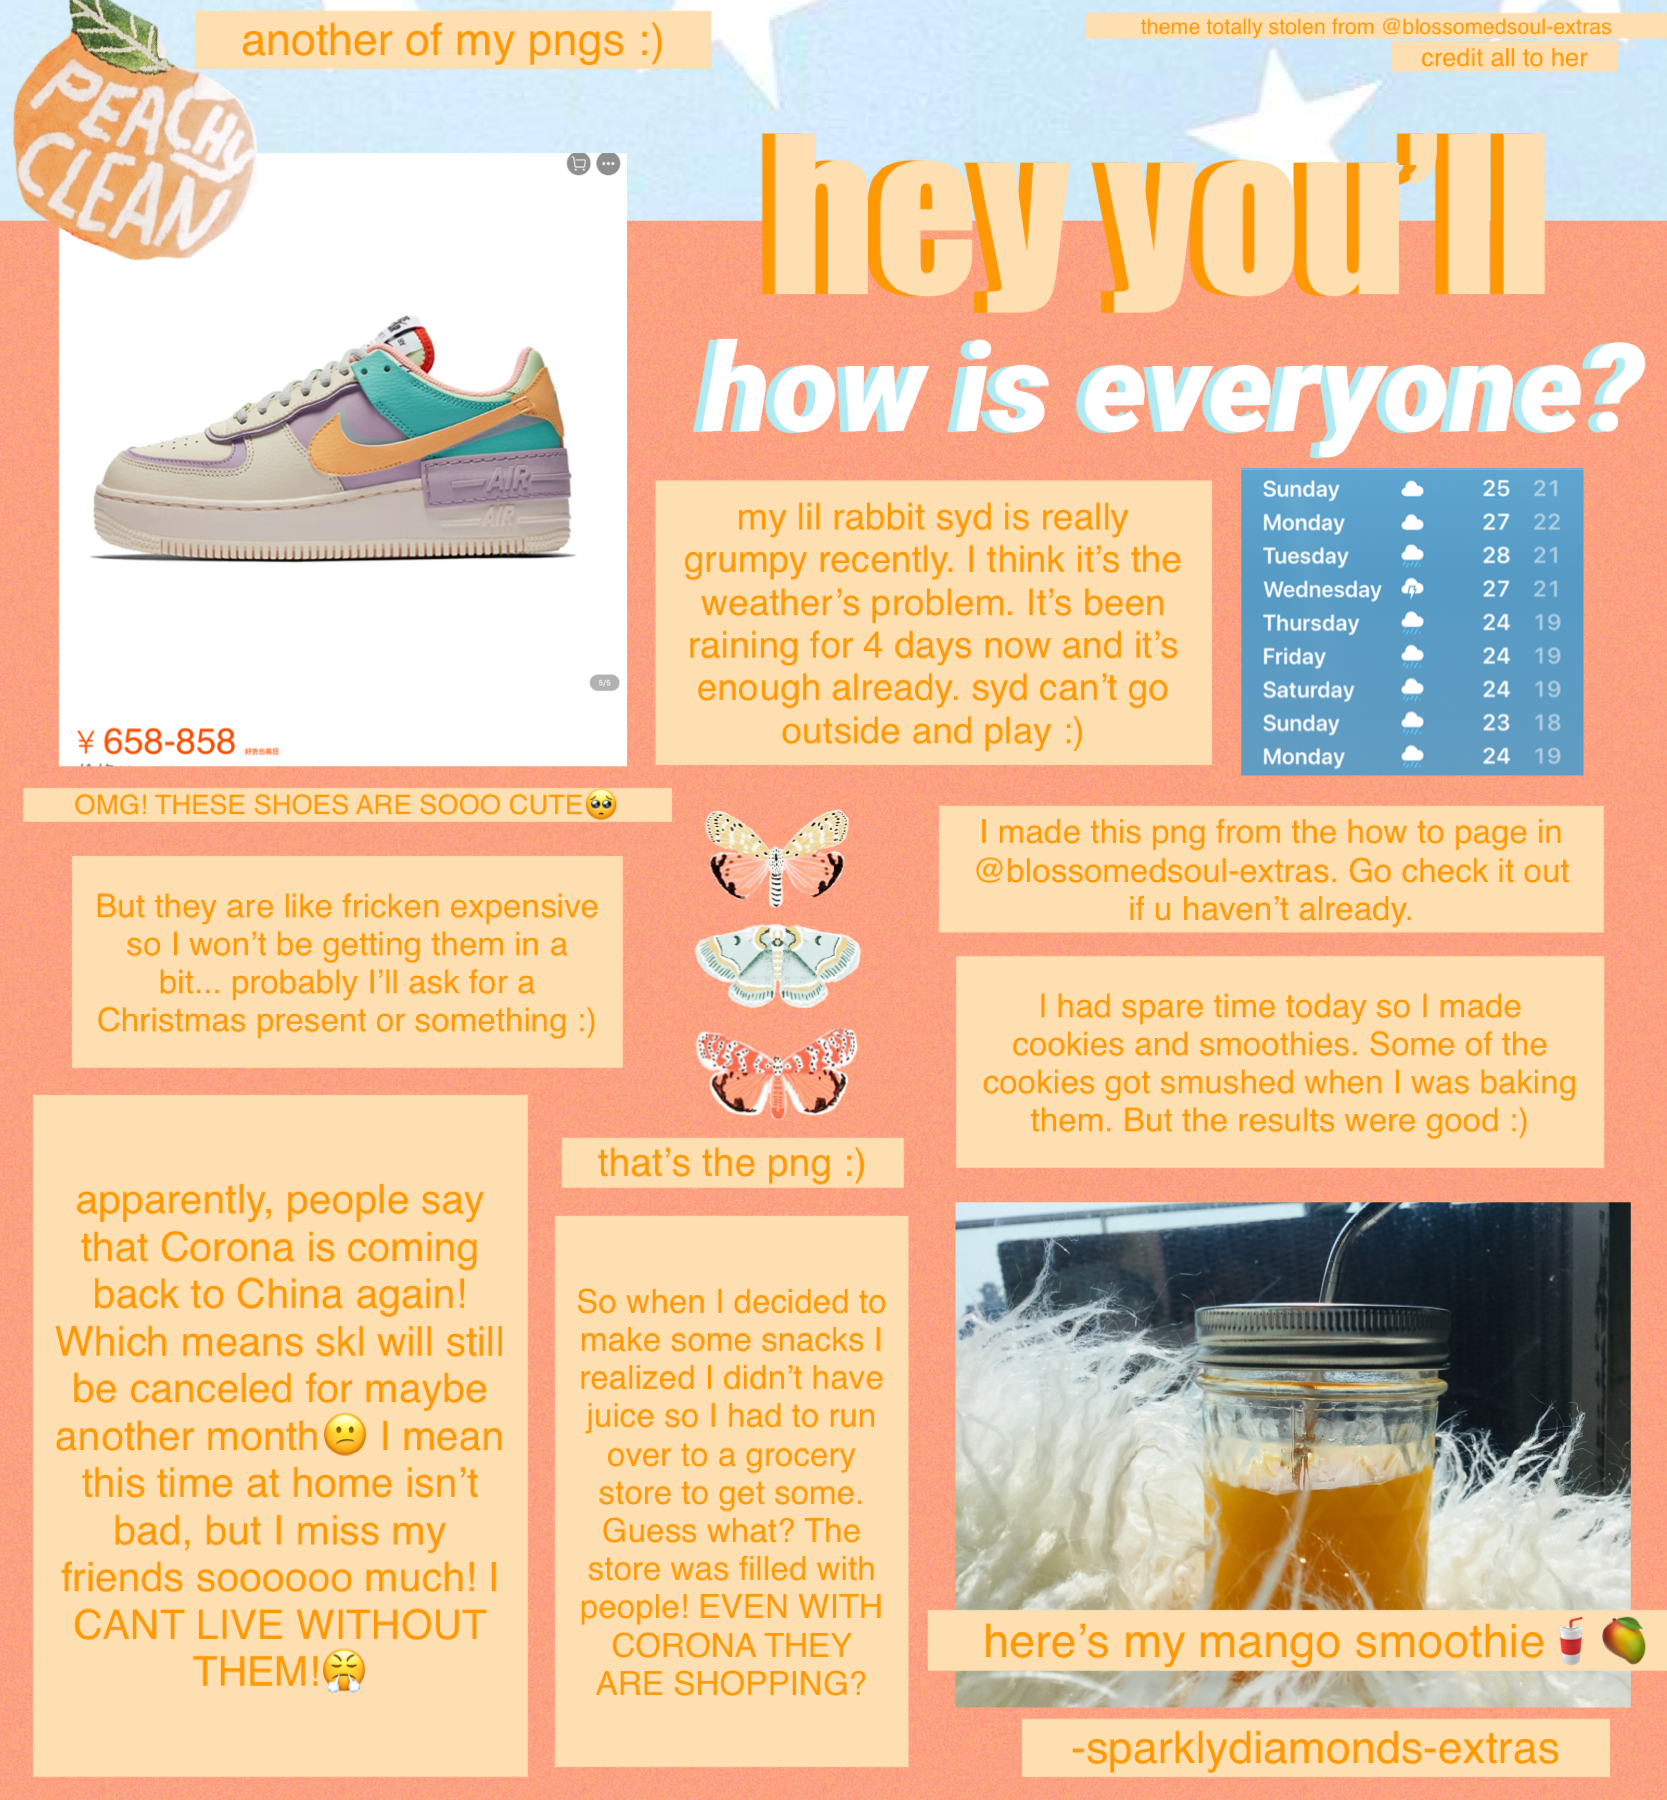 I want those shoes sooooooo much ~tap~  I can't wait for Christmas! btw, I wish the weather will clear up next week and give me some sUnShInE 🌞 I really need! my lil syd needs it too🥺🐰